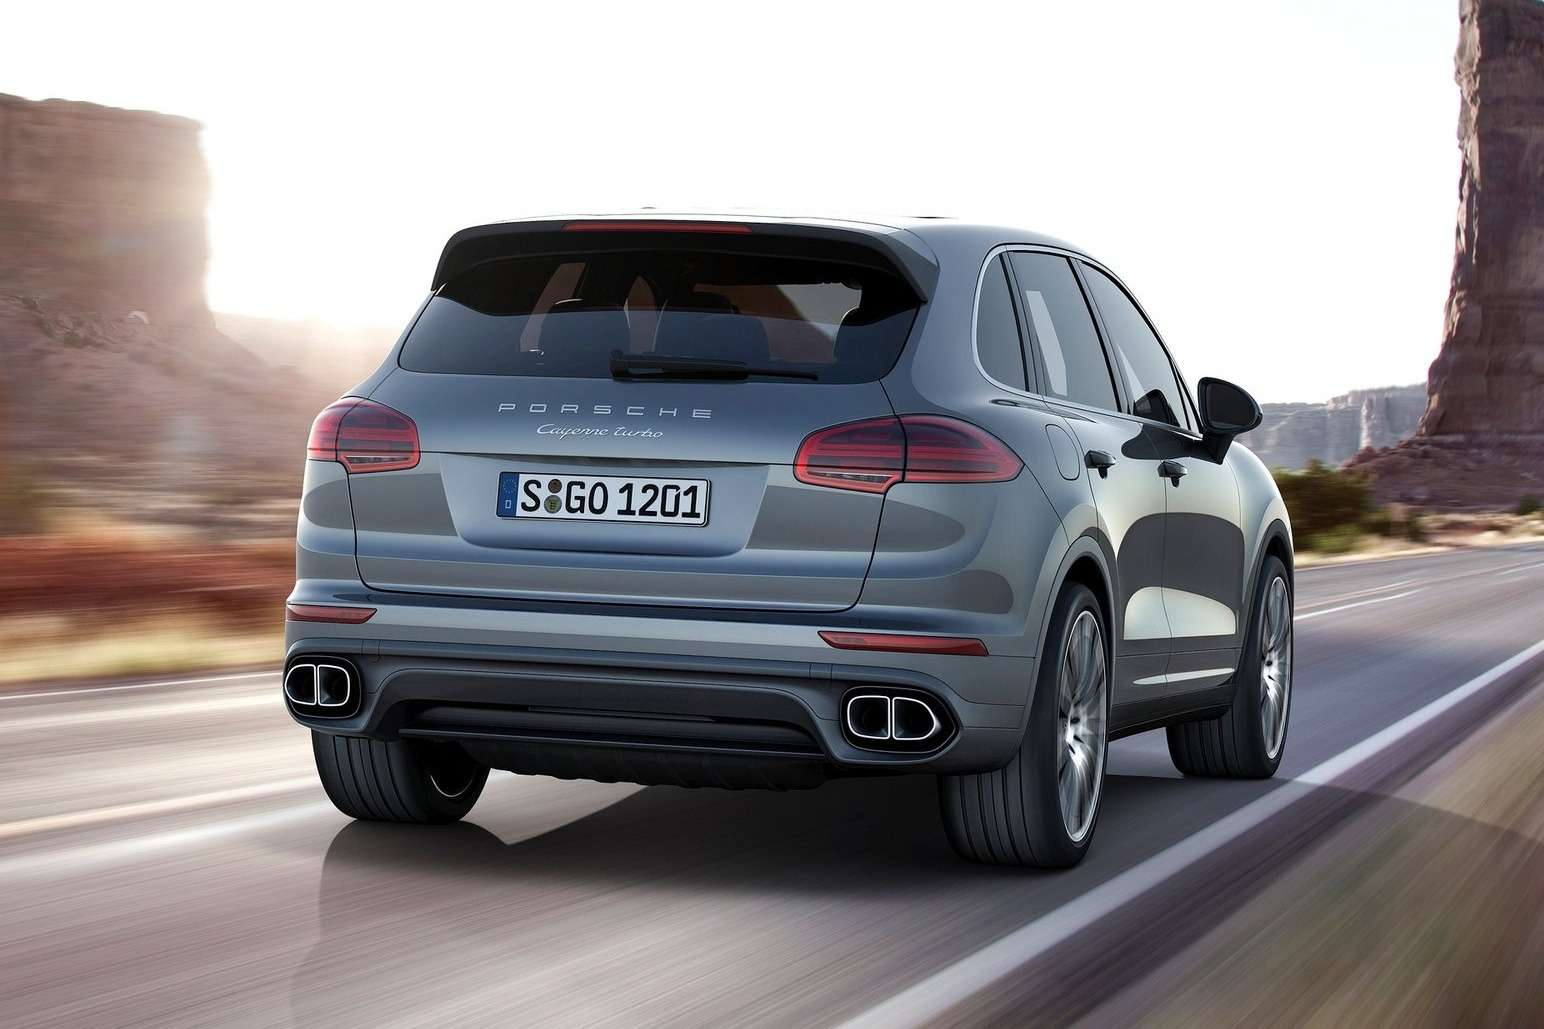 Porsche-Cayenne_2015_1600x1200_wallpaper_06